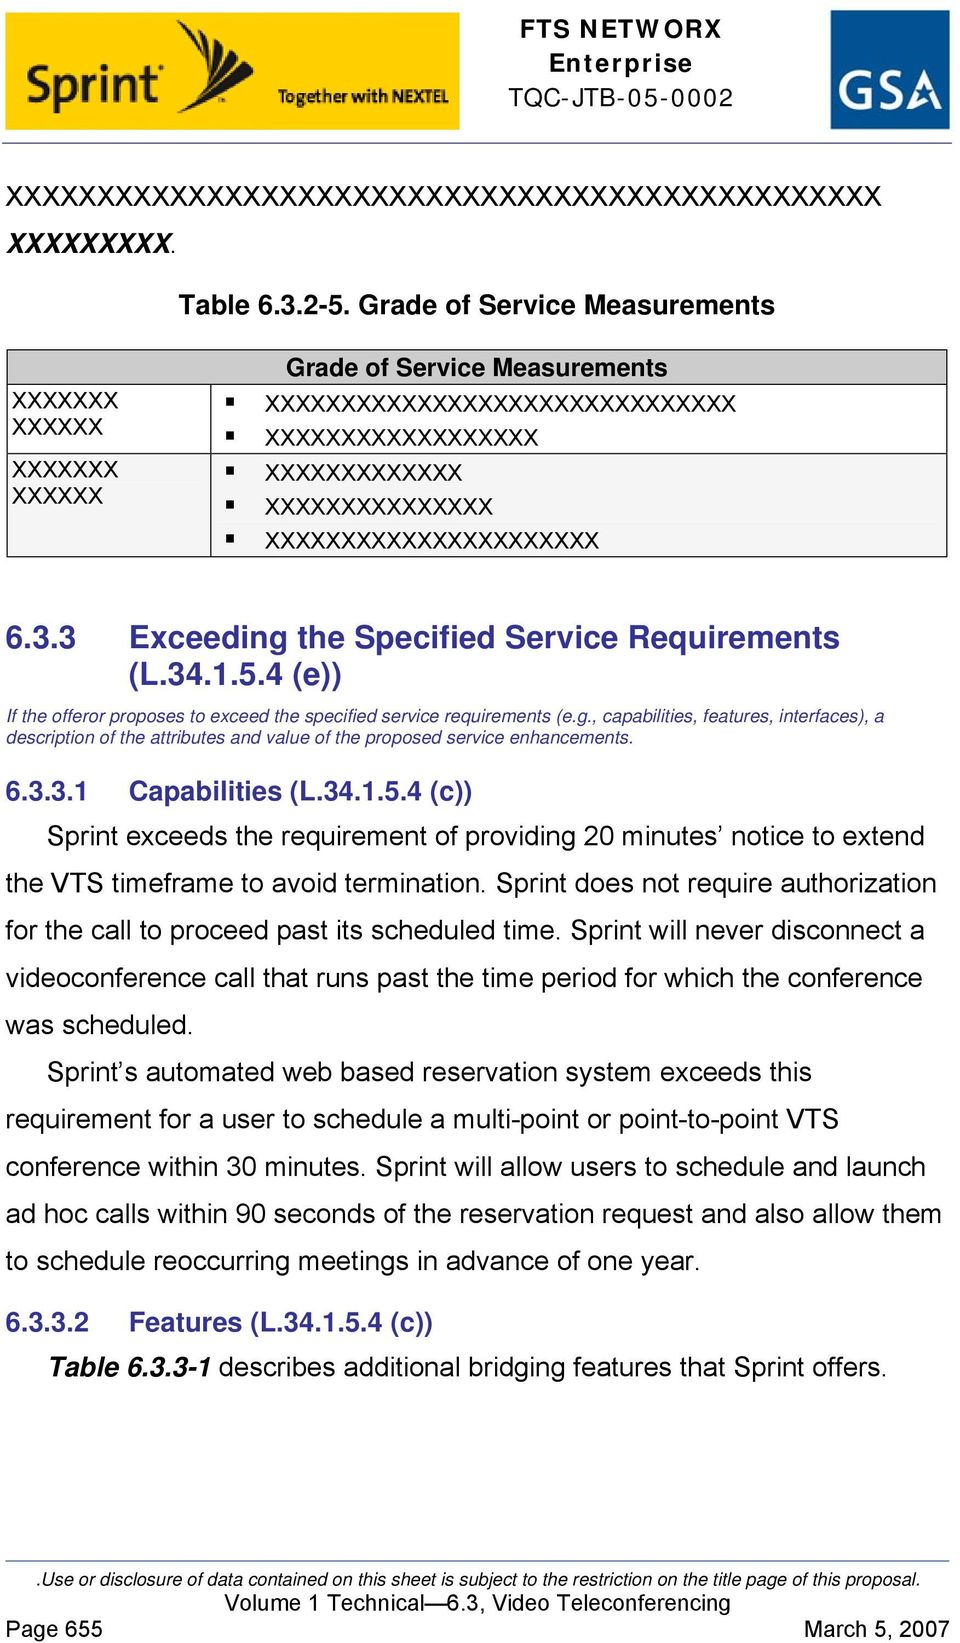 3 Exceeding the Specified Service Requirements (L.34.1.5.4 (e)) If the offeror proposes to exceed the specified service requirements (e.g., capabilities, features, interfaces), a description of the attributes and value of the proposed service enhancements.